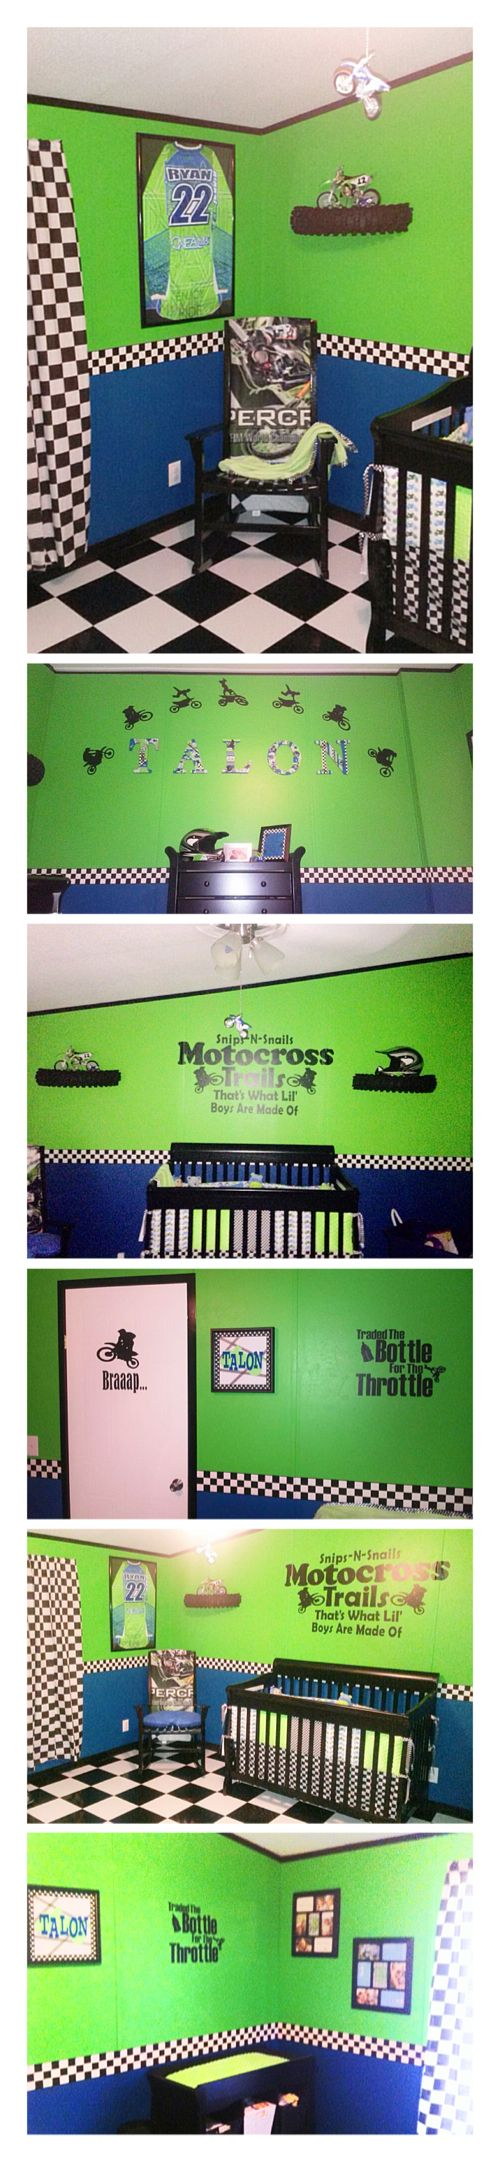 Dirt-bike baby, dirt bike room, moto baby, moto room, boy nursery, green and blue, racing baby, dirt bike tire, bedding